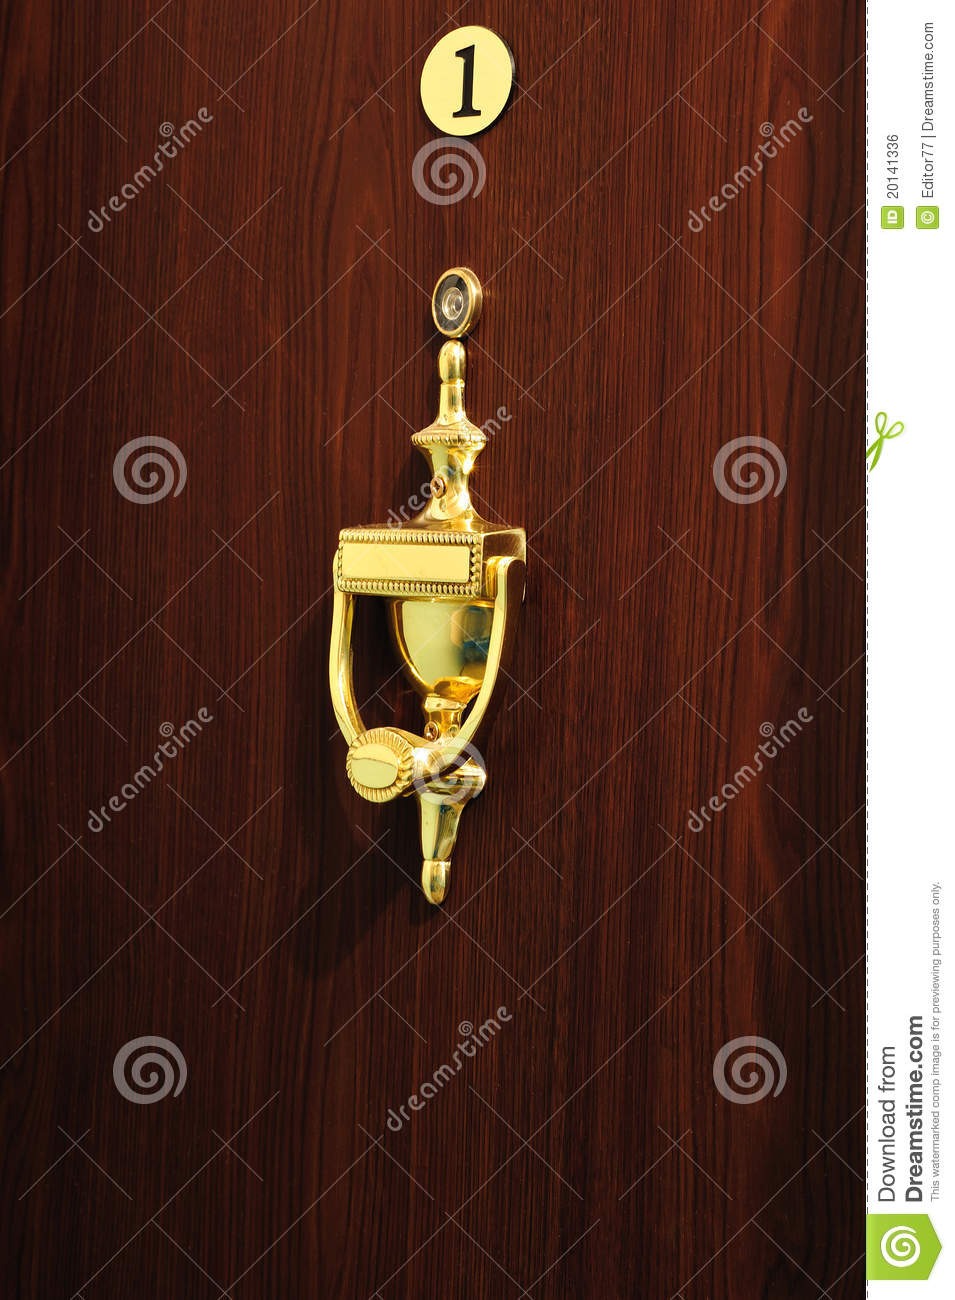 Knocking at the door royalty free stock image image for Door knocking sound